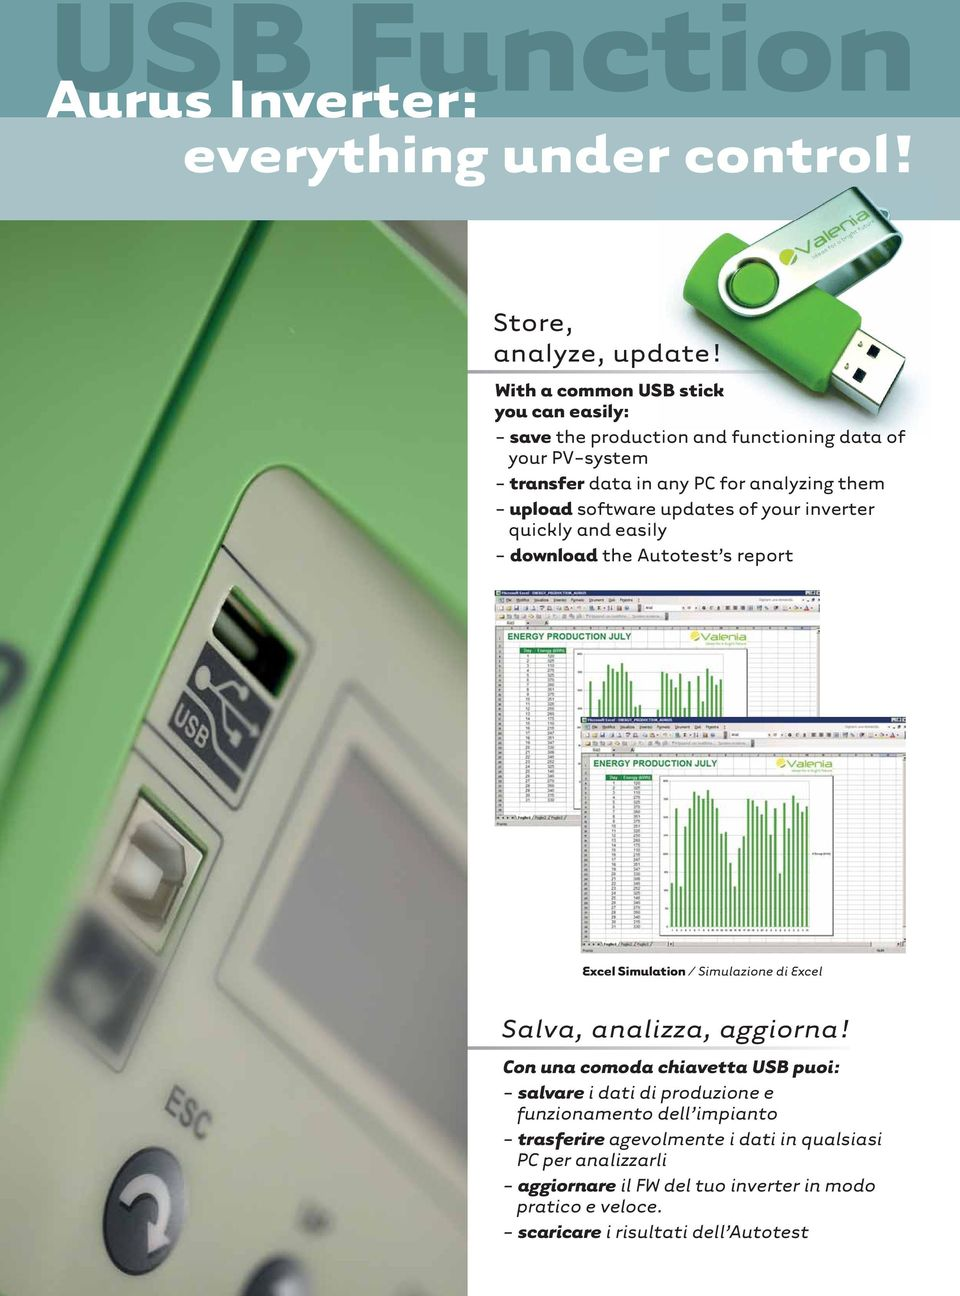 software updates of your inverter quickly and easily - download the Autotest s report Excel Simulation / Simulazione di Excel 14 Salva, analizza, aggiorna!